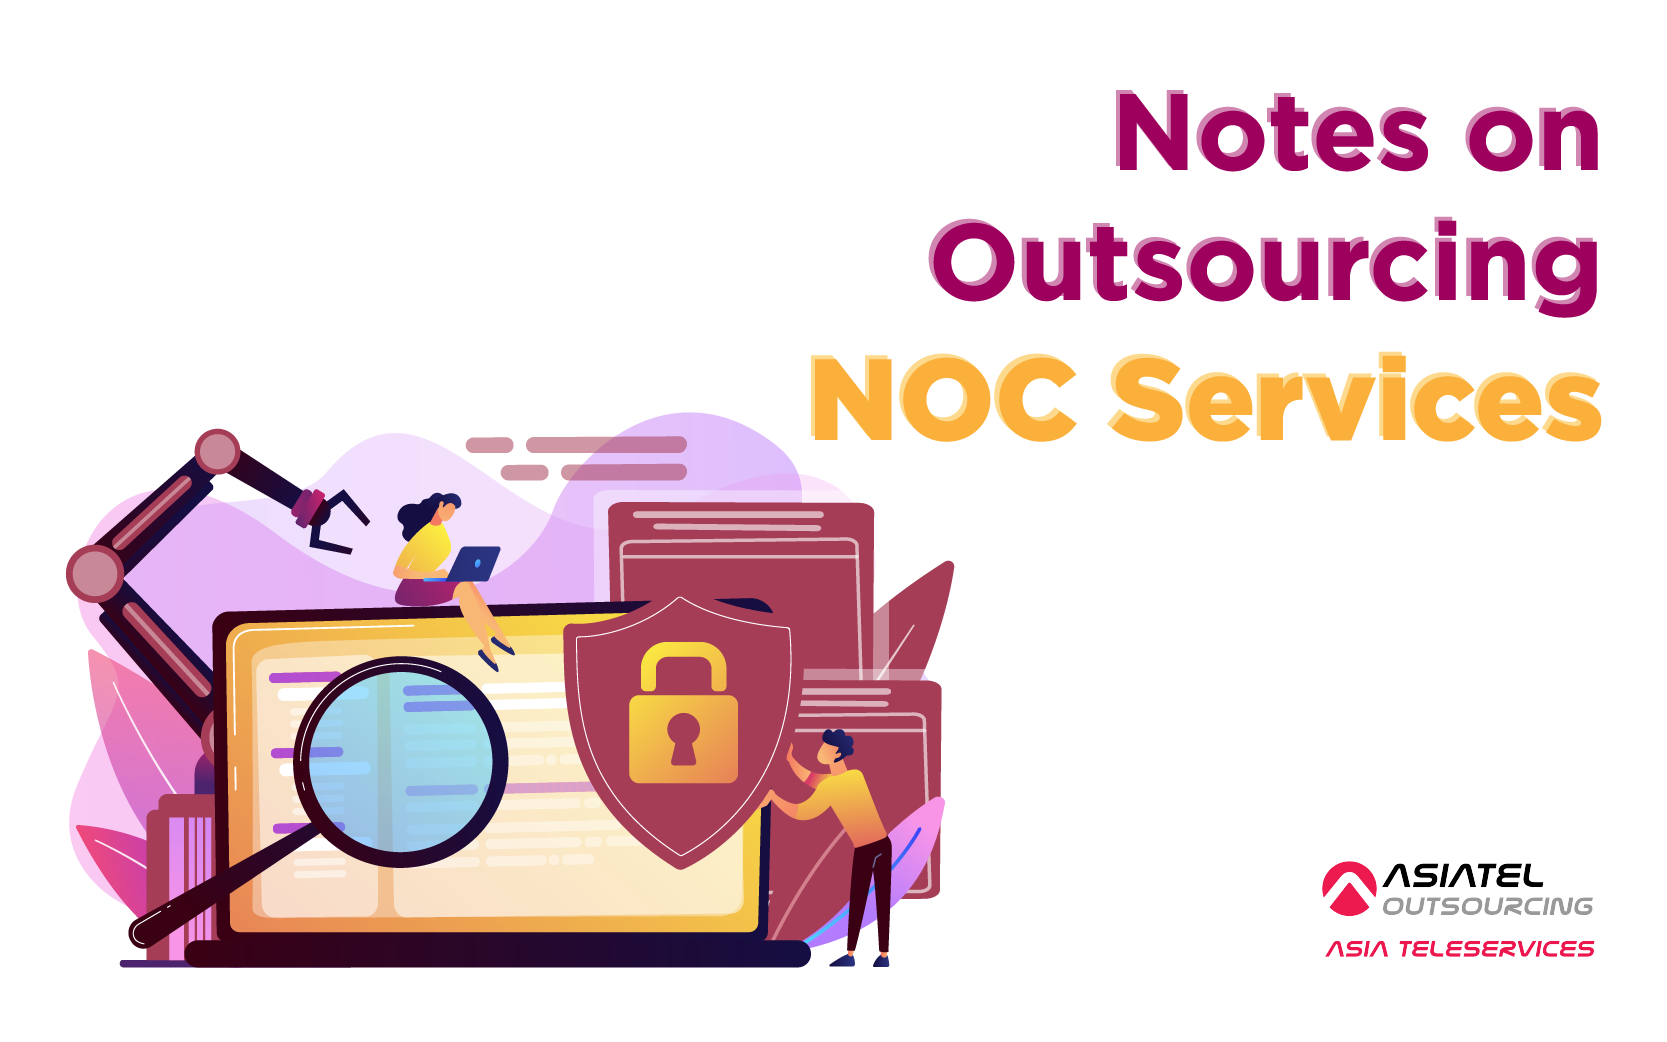 Notes on Outsourcing NOC Services